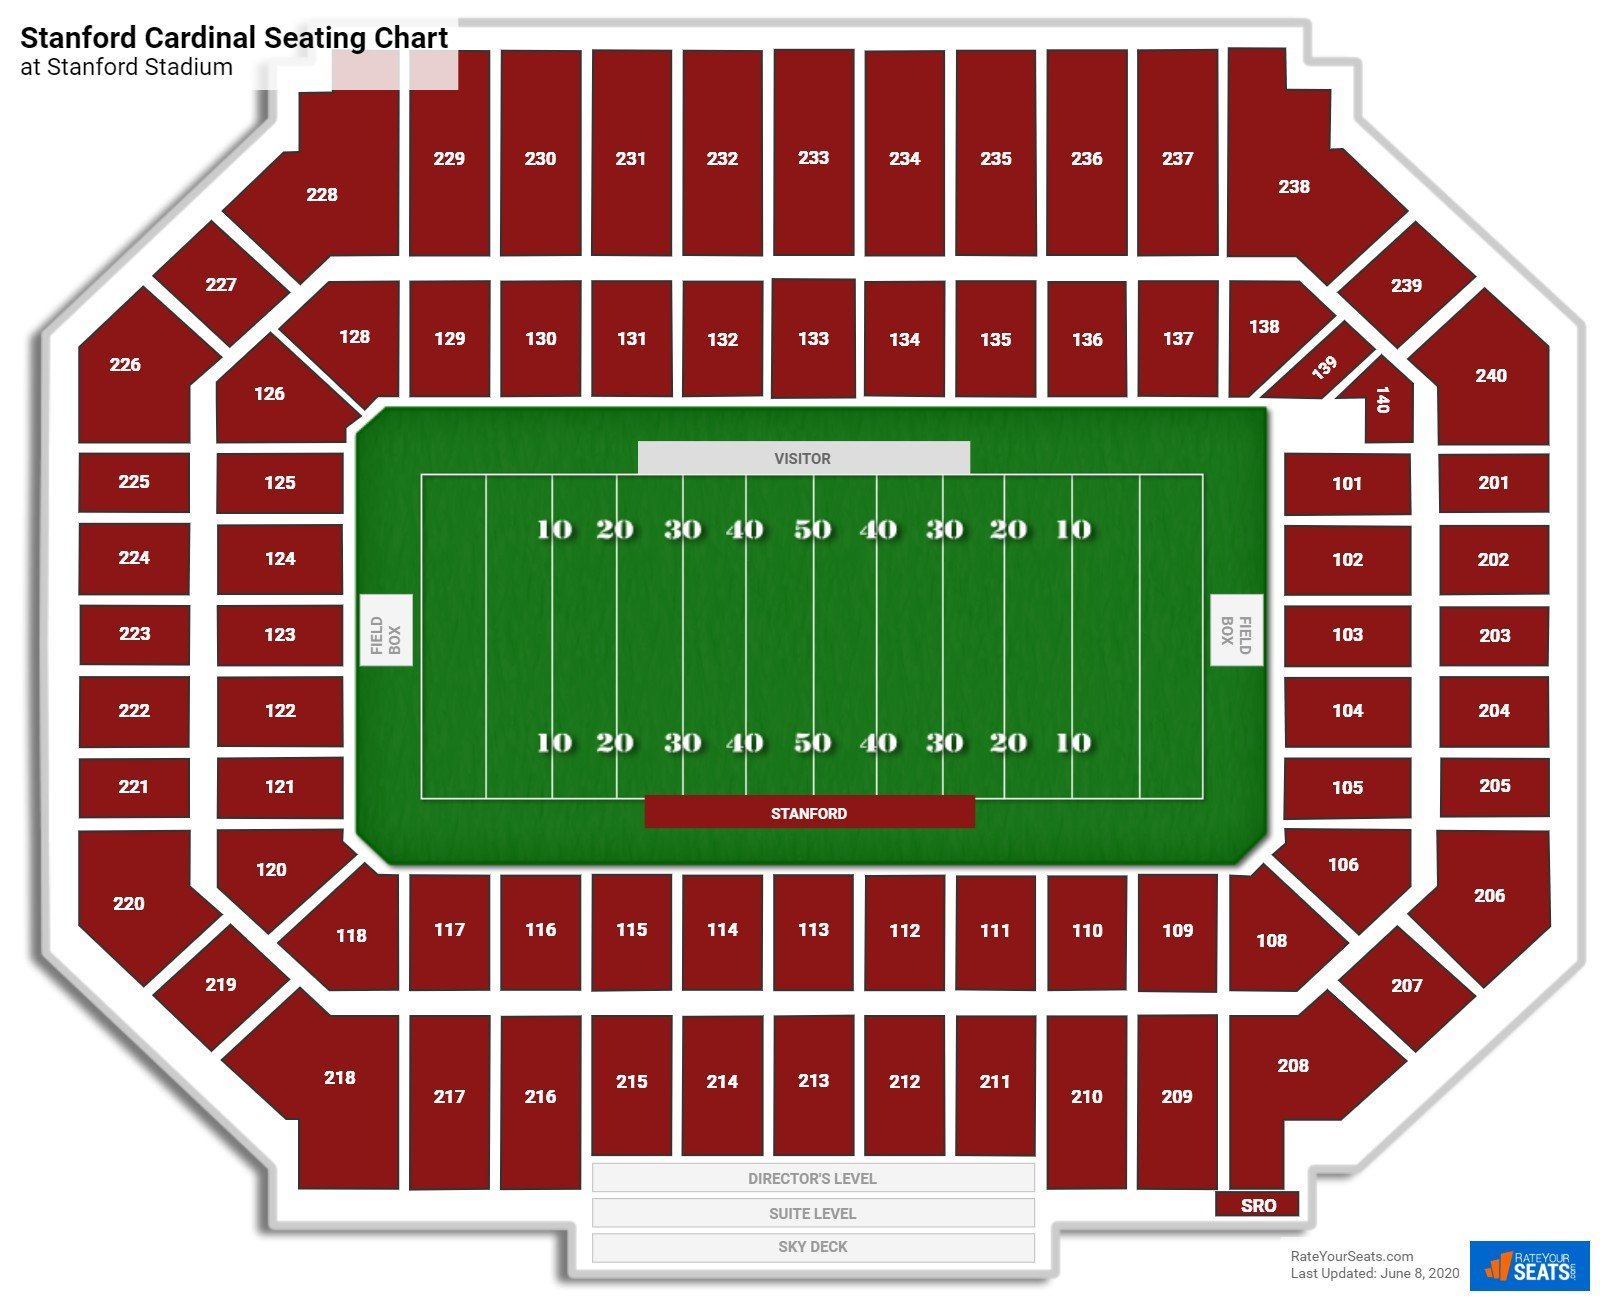 Stanford Football Seating Chart